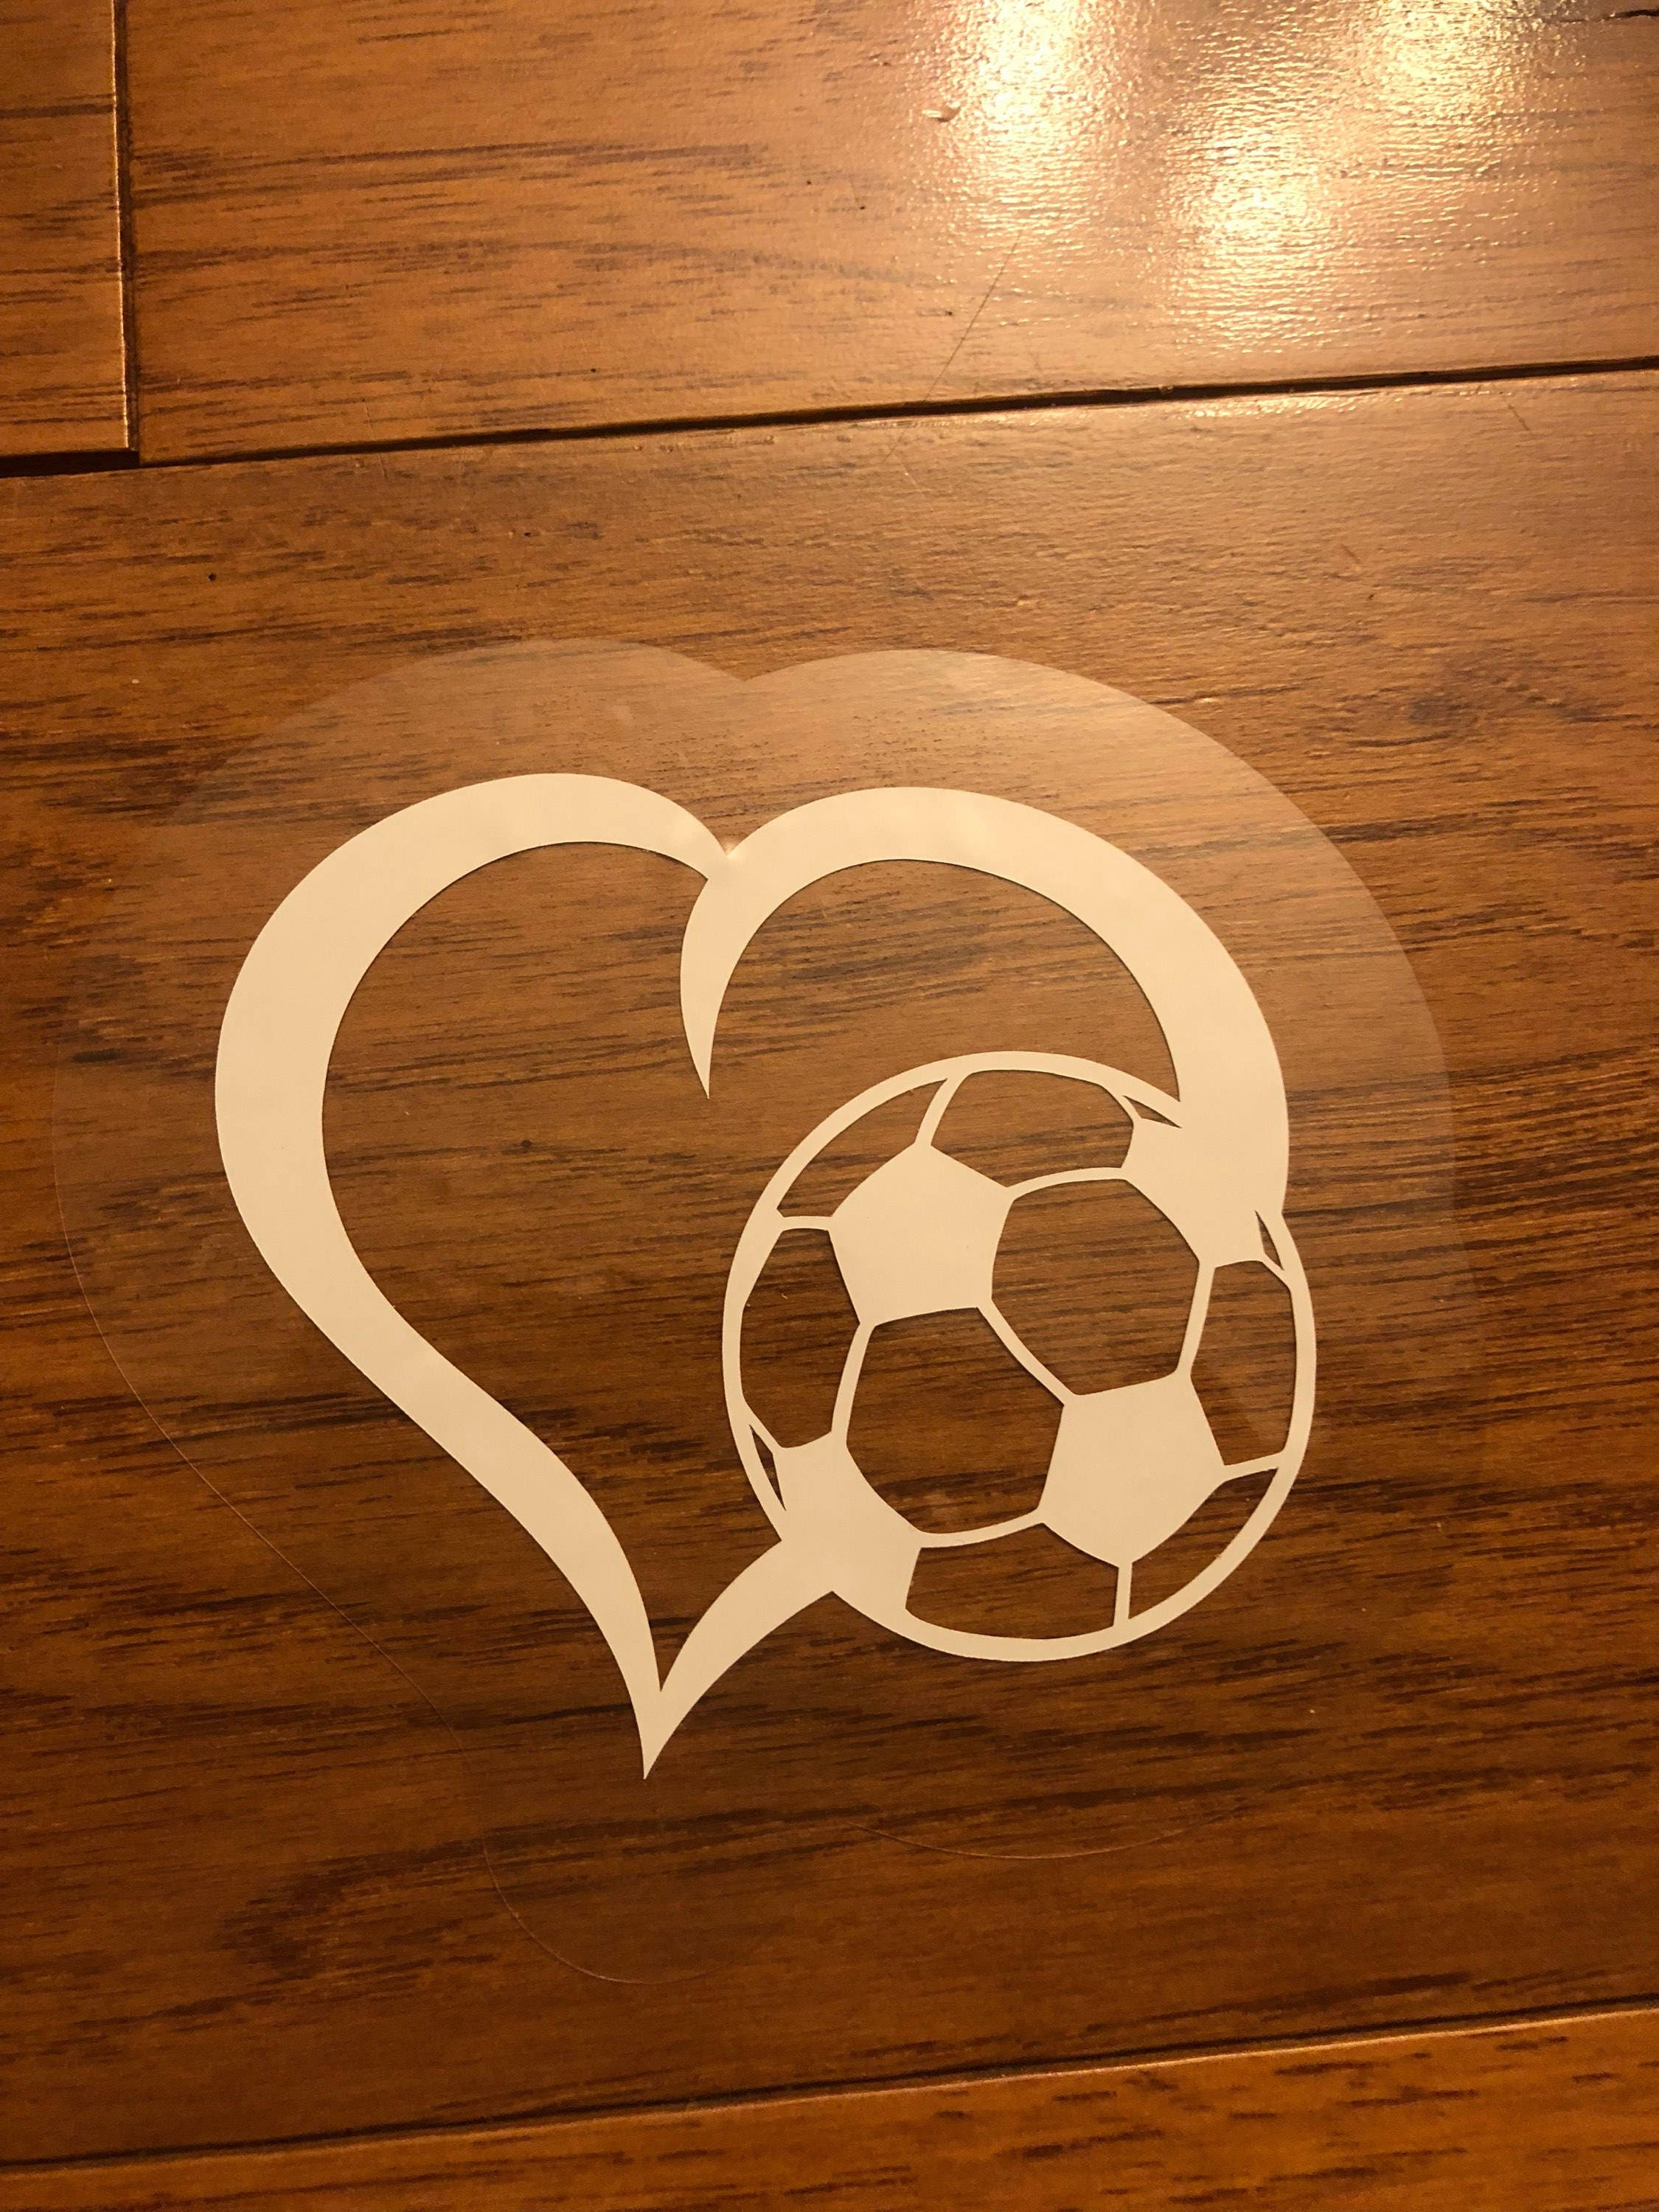 Custom decal window cling vinyl decal car window decal sport son daughter soccer removeable